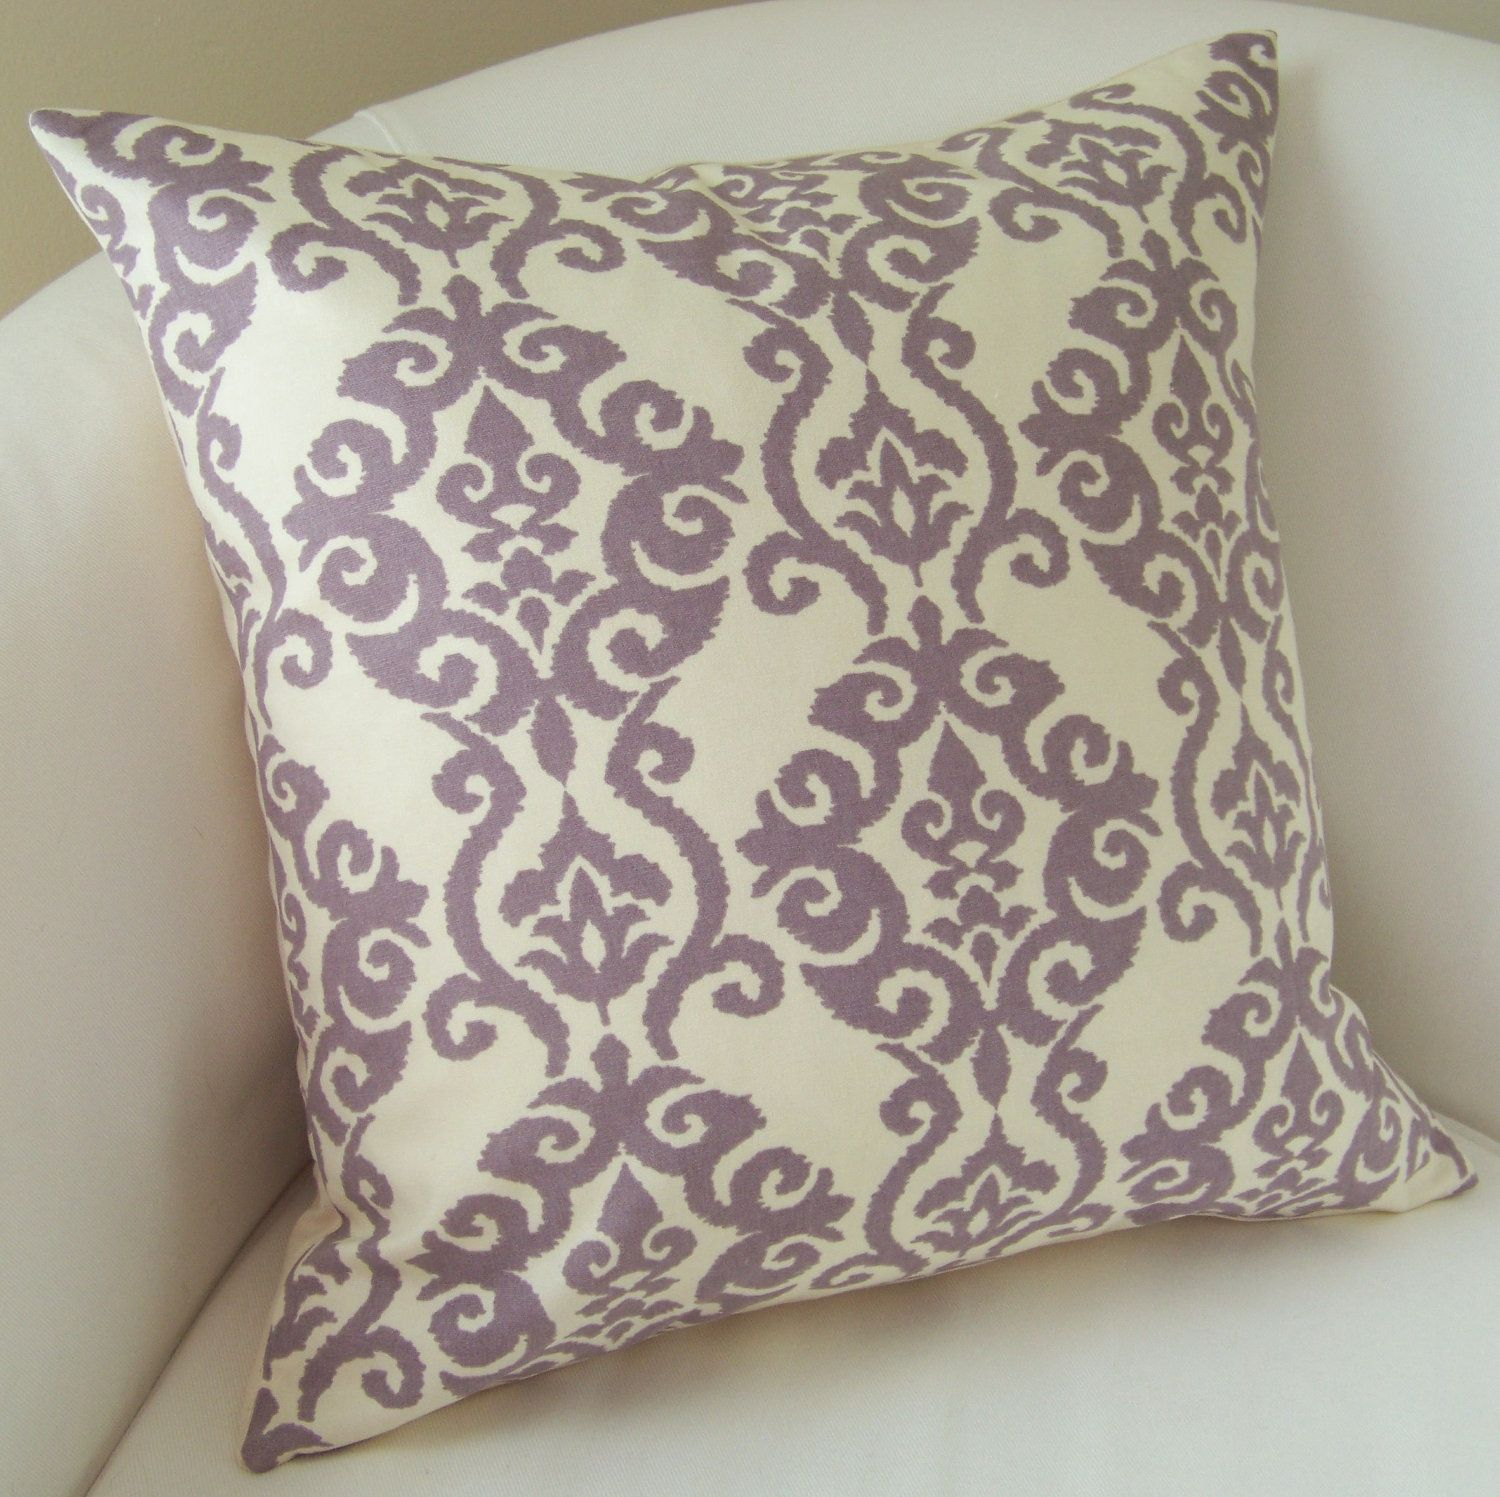 decorative cover pillows square cream product a contemporary pillow accent handmade ii throw purple kashmir modern suzani ivory handembroidered floral wool bohemian cushion couch sofa